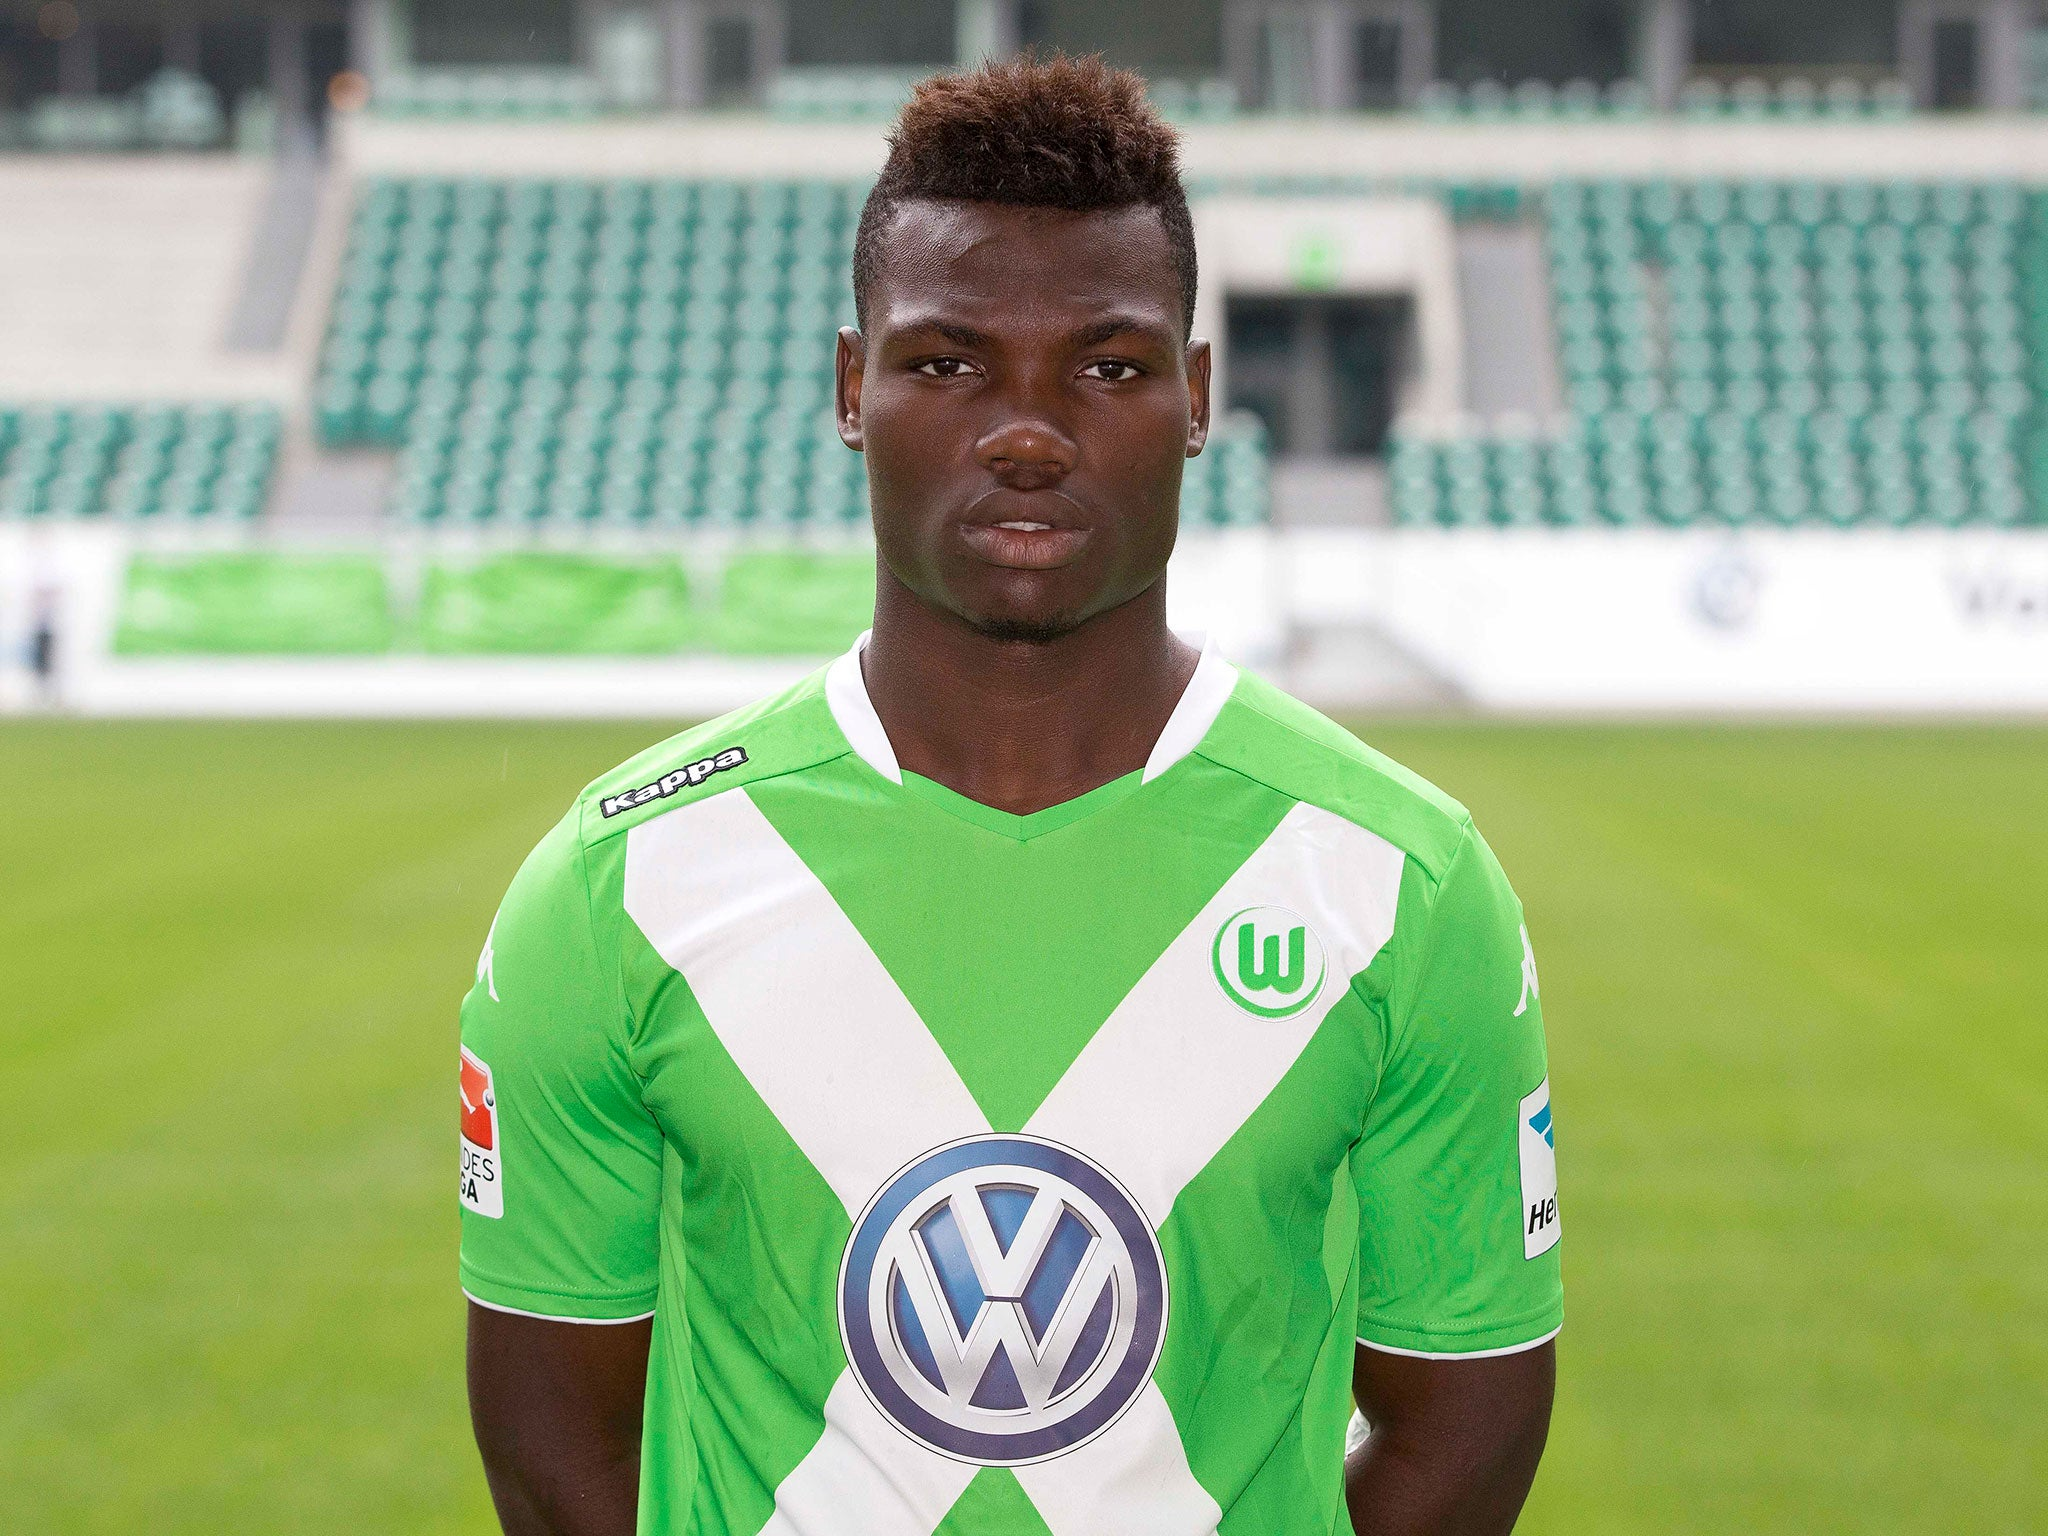 https://static.independent.co.uk/s3fs-public/thumbnails/image/2015/01/10/18/Junior-Malanda.jpg